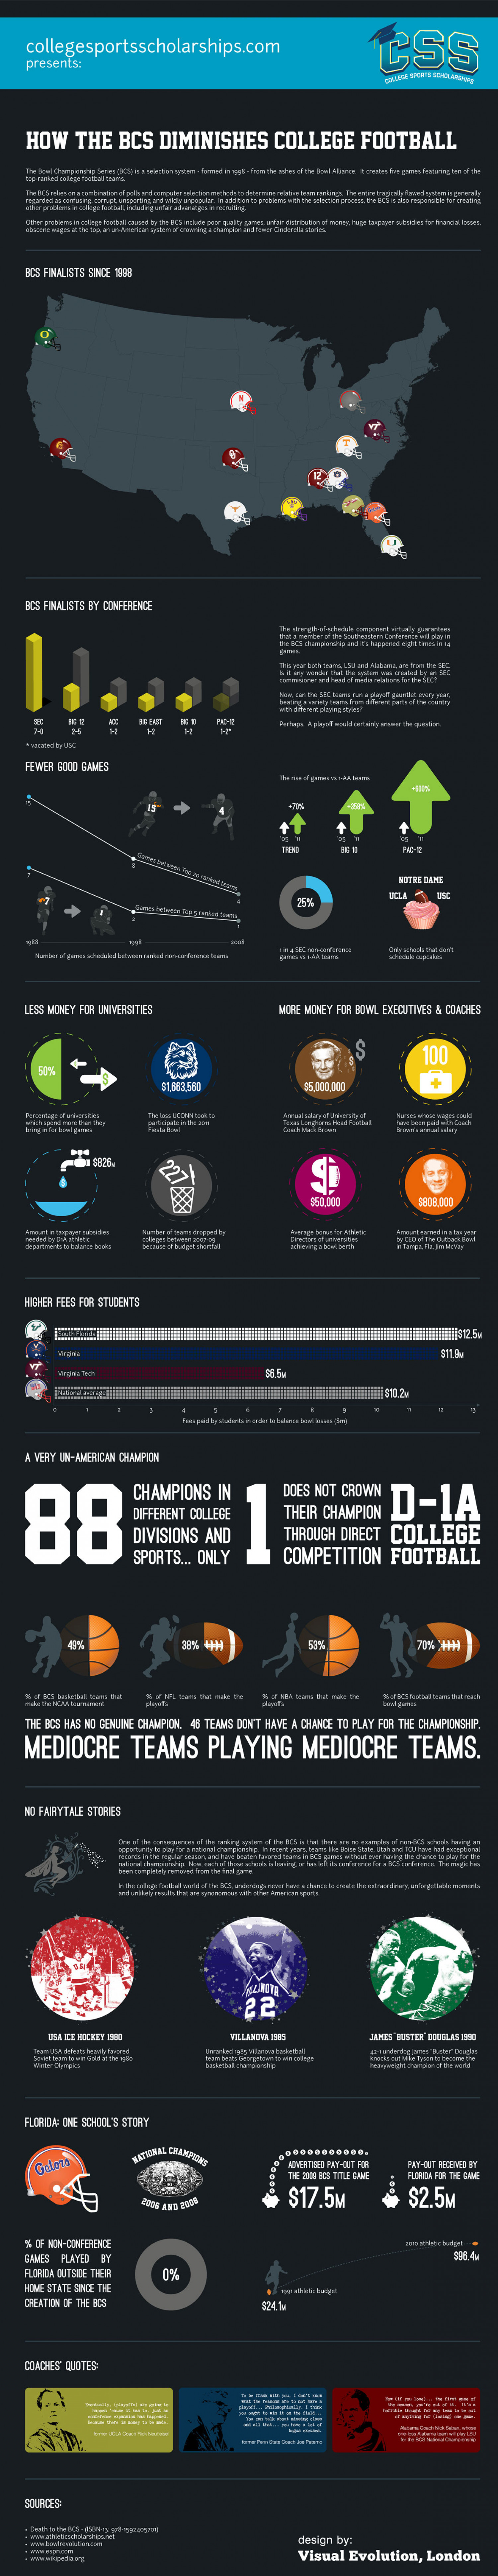 How the BCS Diminishes College Football Infographic